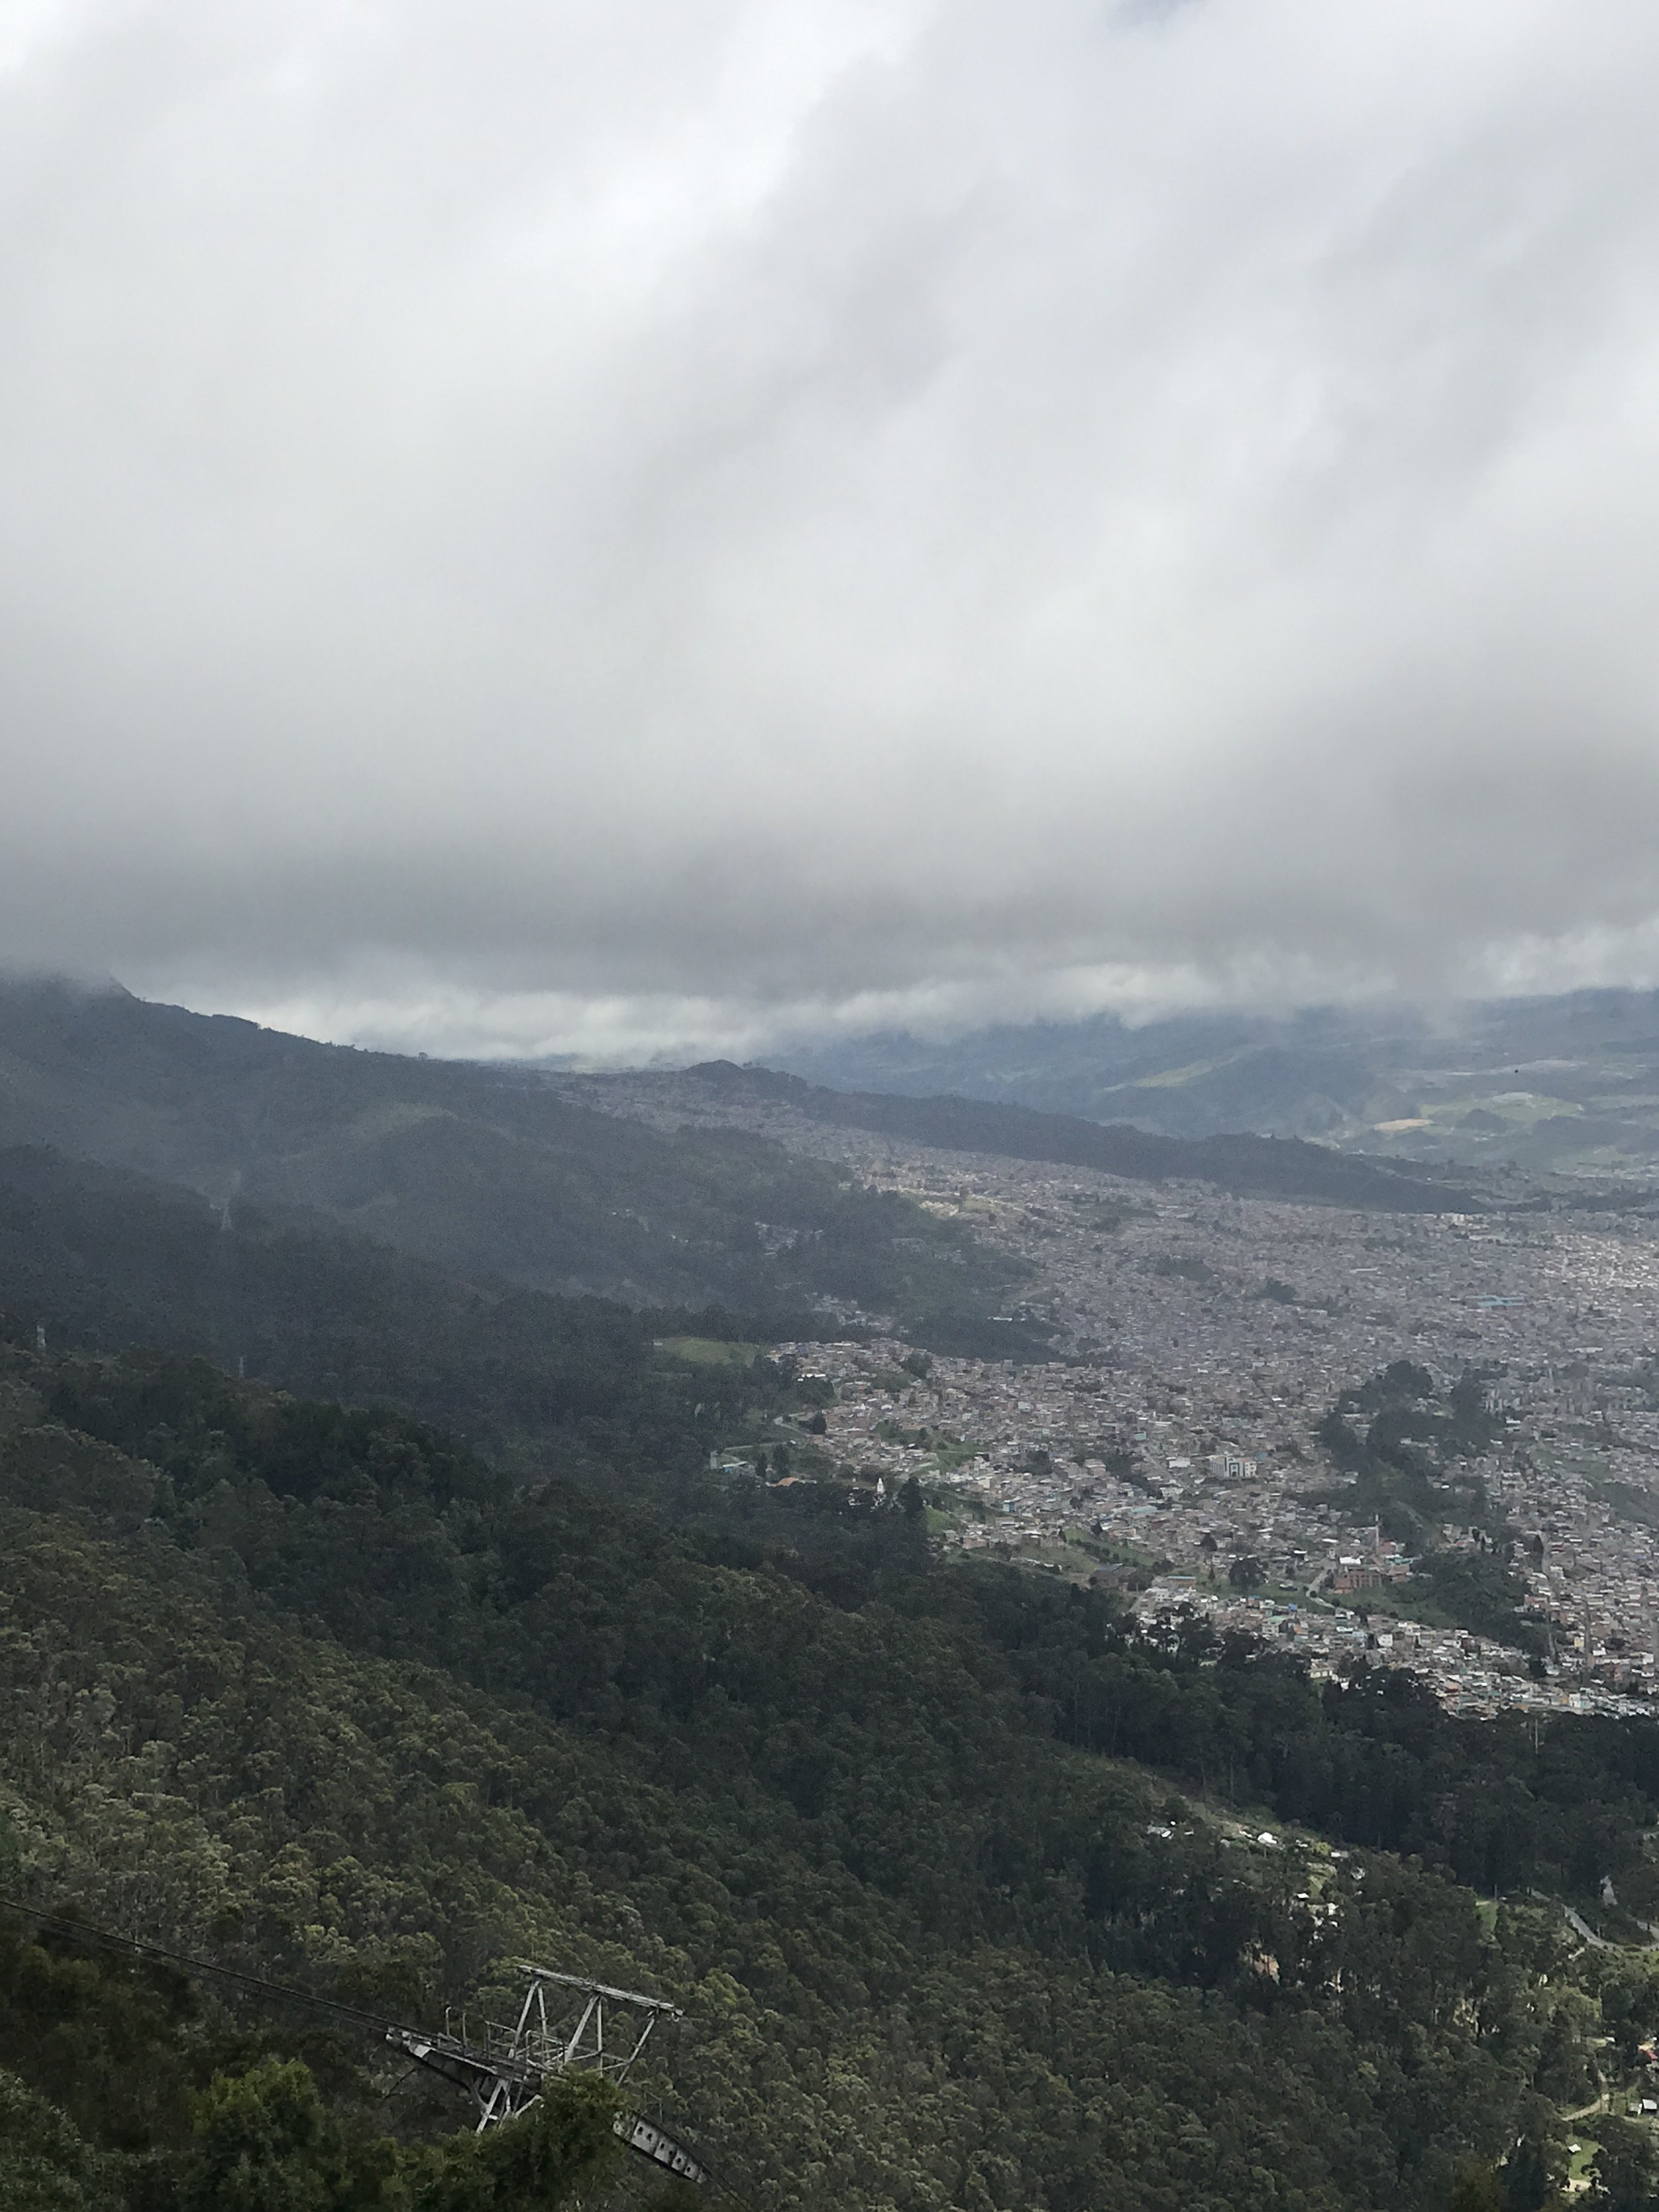 Another view of Bogotà from Montserrate